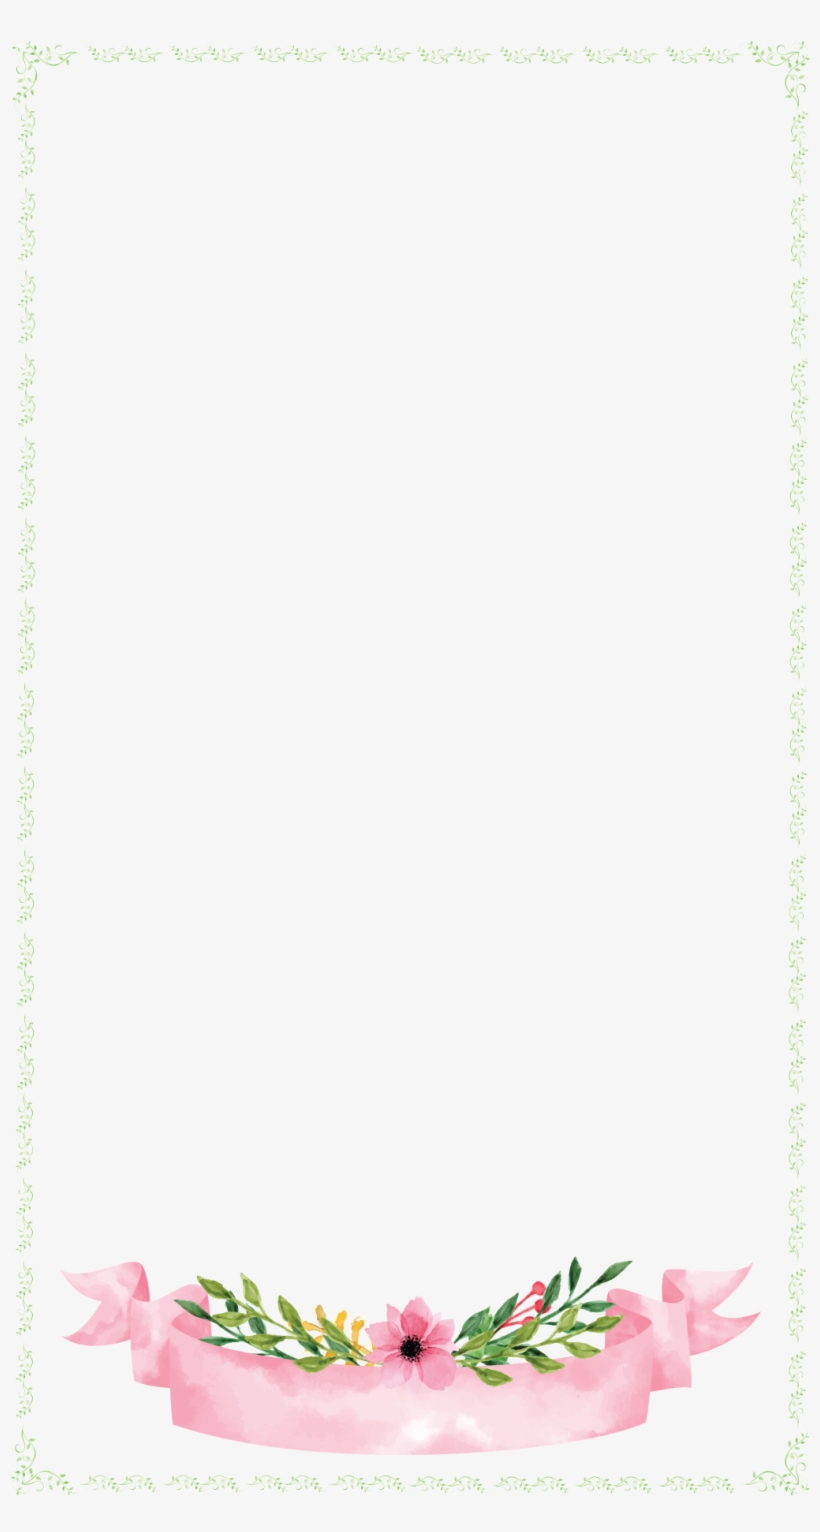 Snapchat border clipart image black and white stock Floral Banner With Border Wedding Snapchat Filter - No-name ... image black and white stock